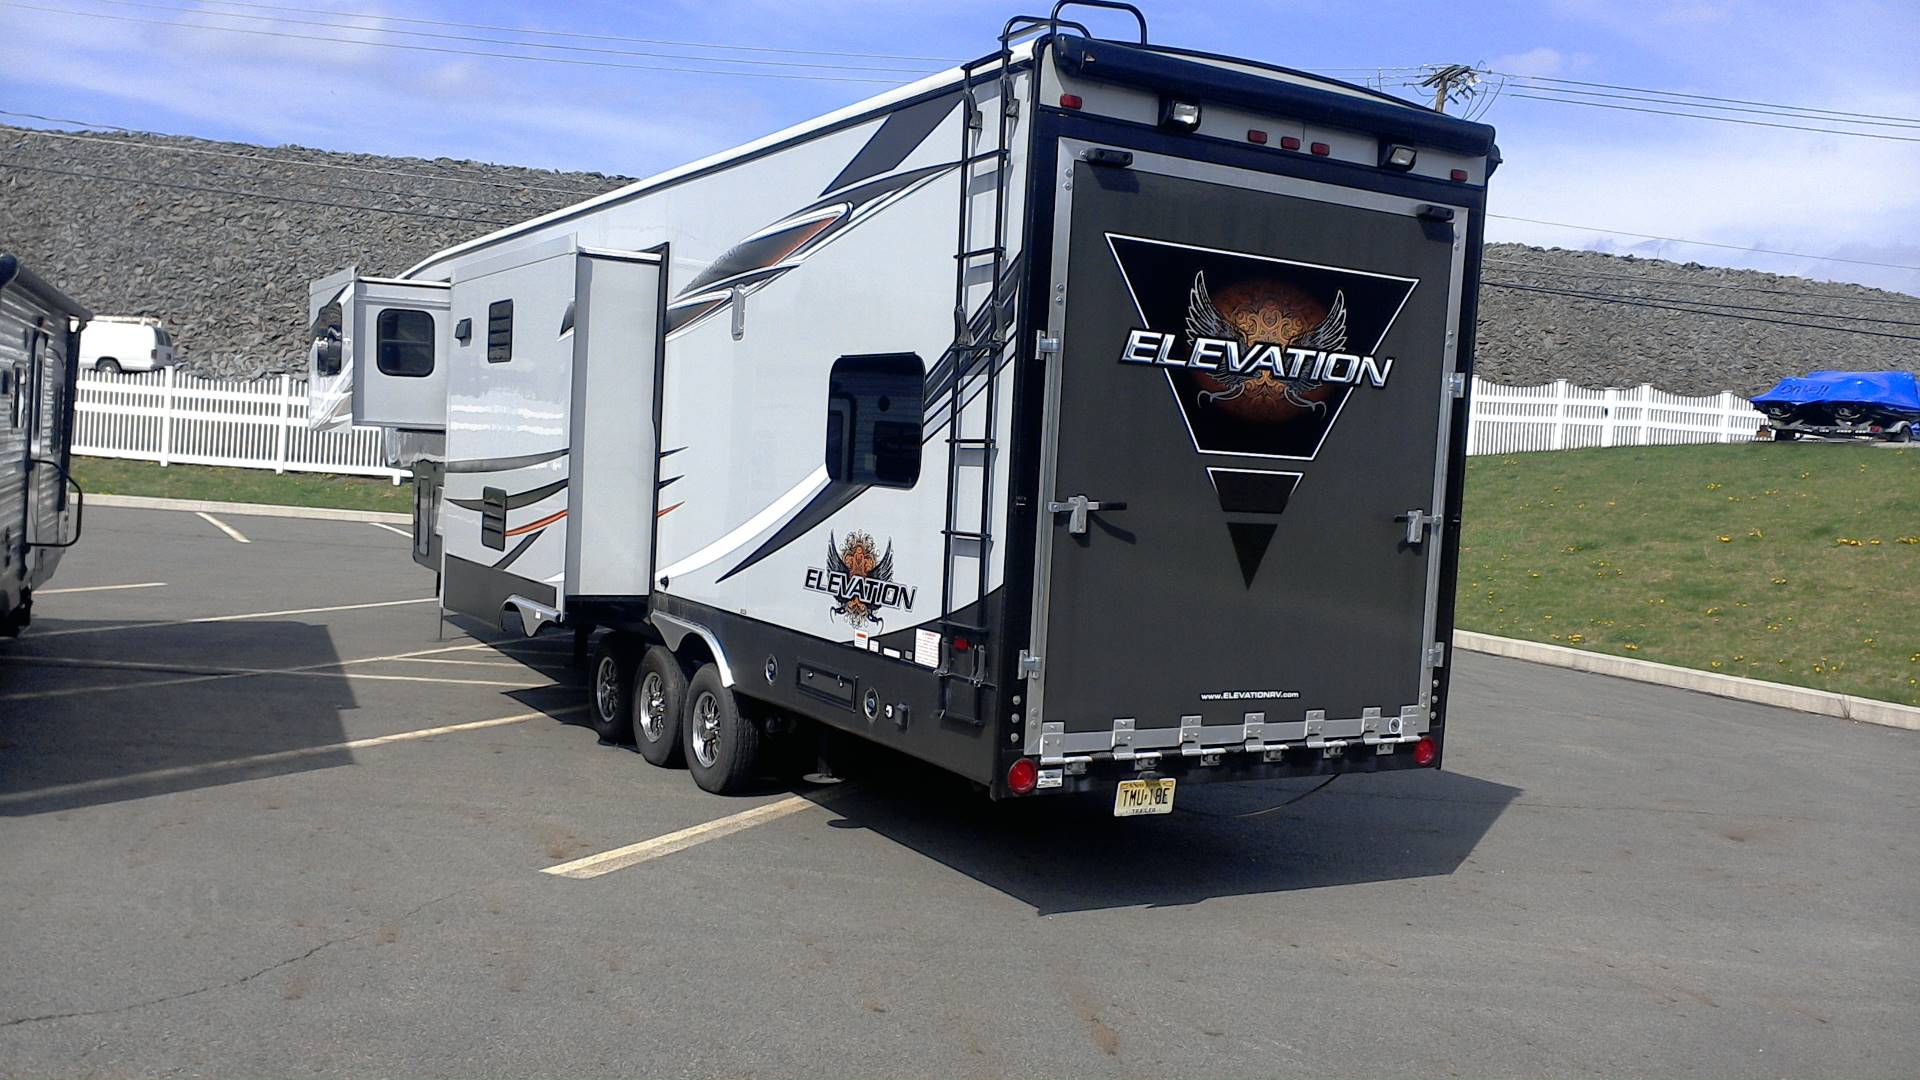 2014 ELEVATION TOY HAULER in Honesdale, Pennsylvania